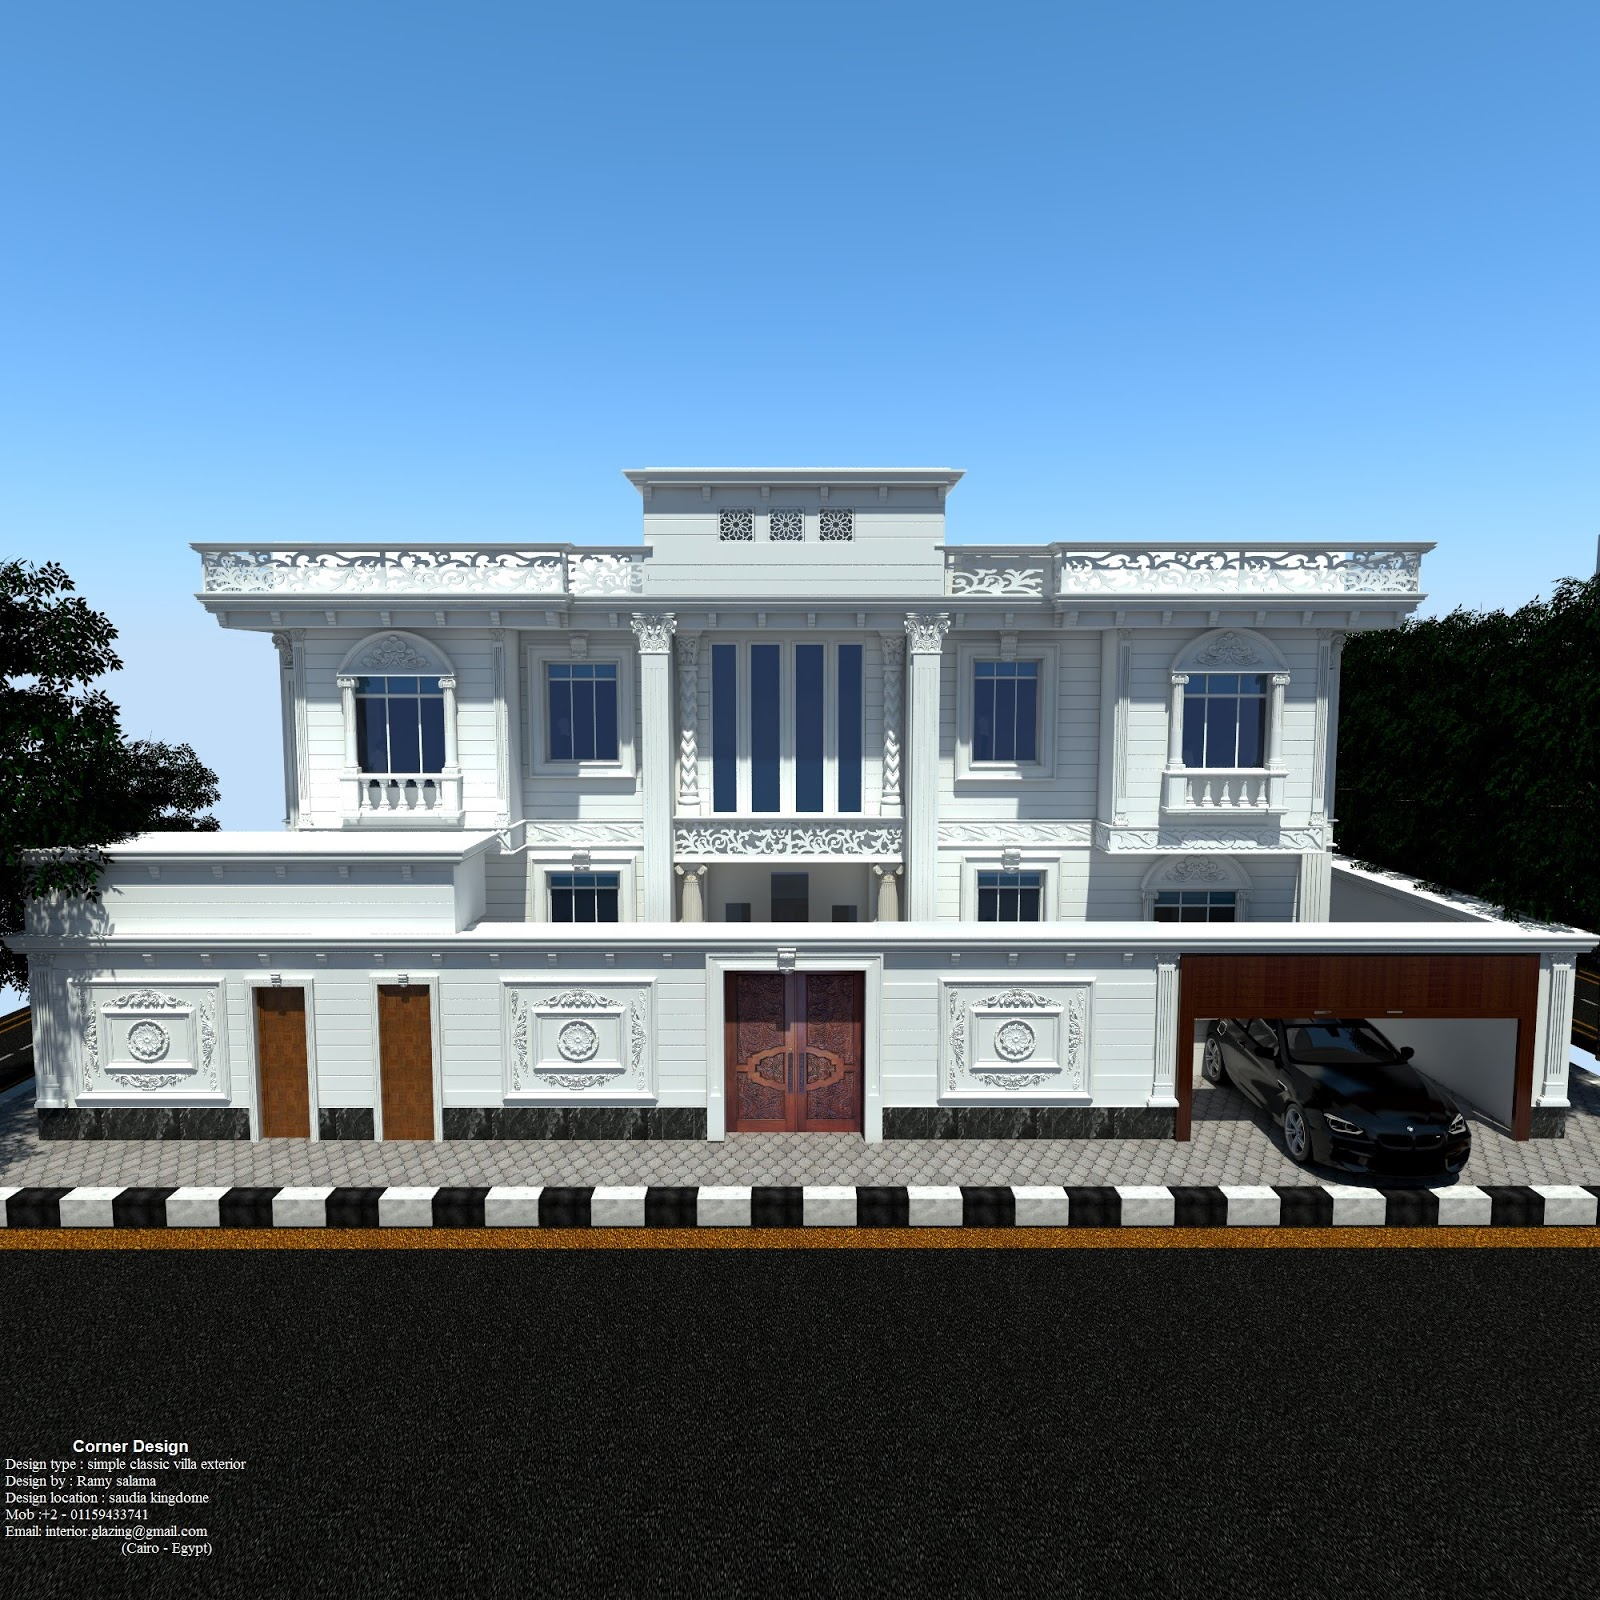 Corner design simple classic villa exterior design for Classic villa exterior design